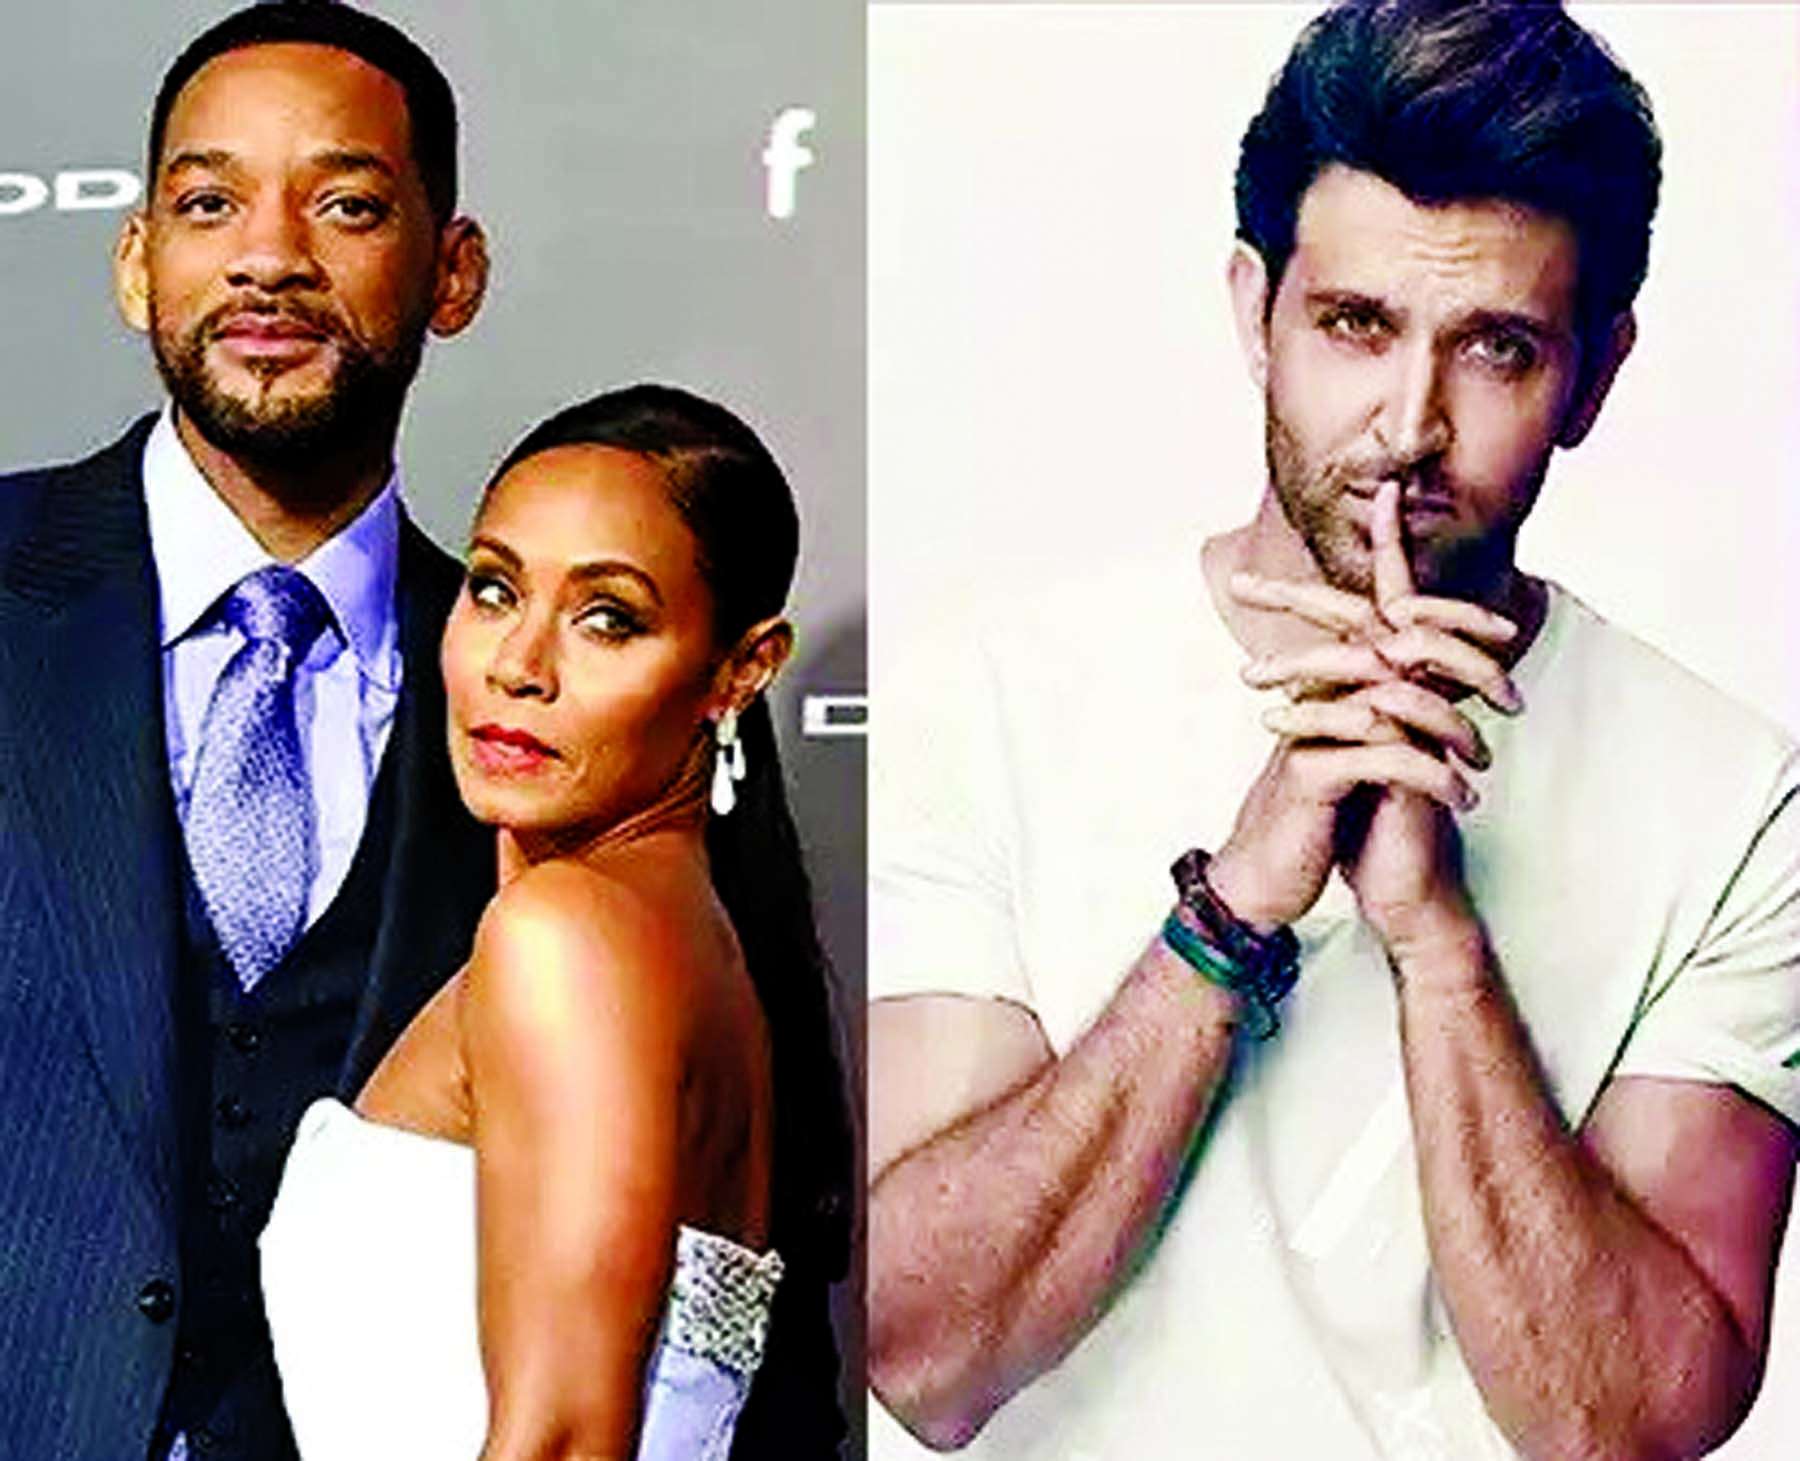 Hrithik, Smith, others contribute to Covid-19 relief funds for India